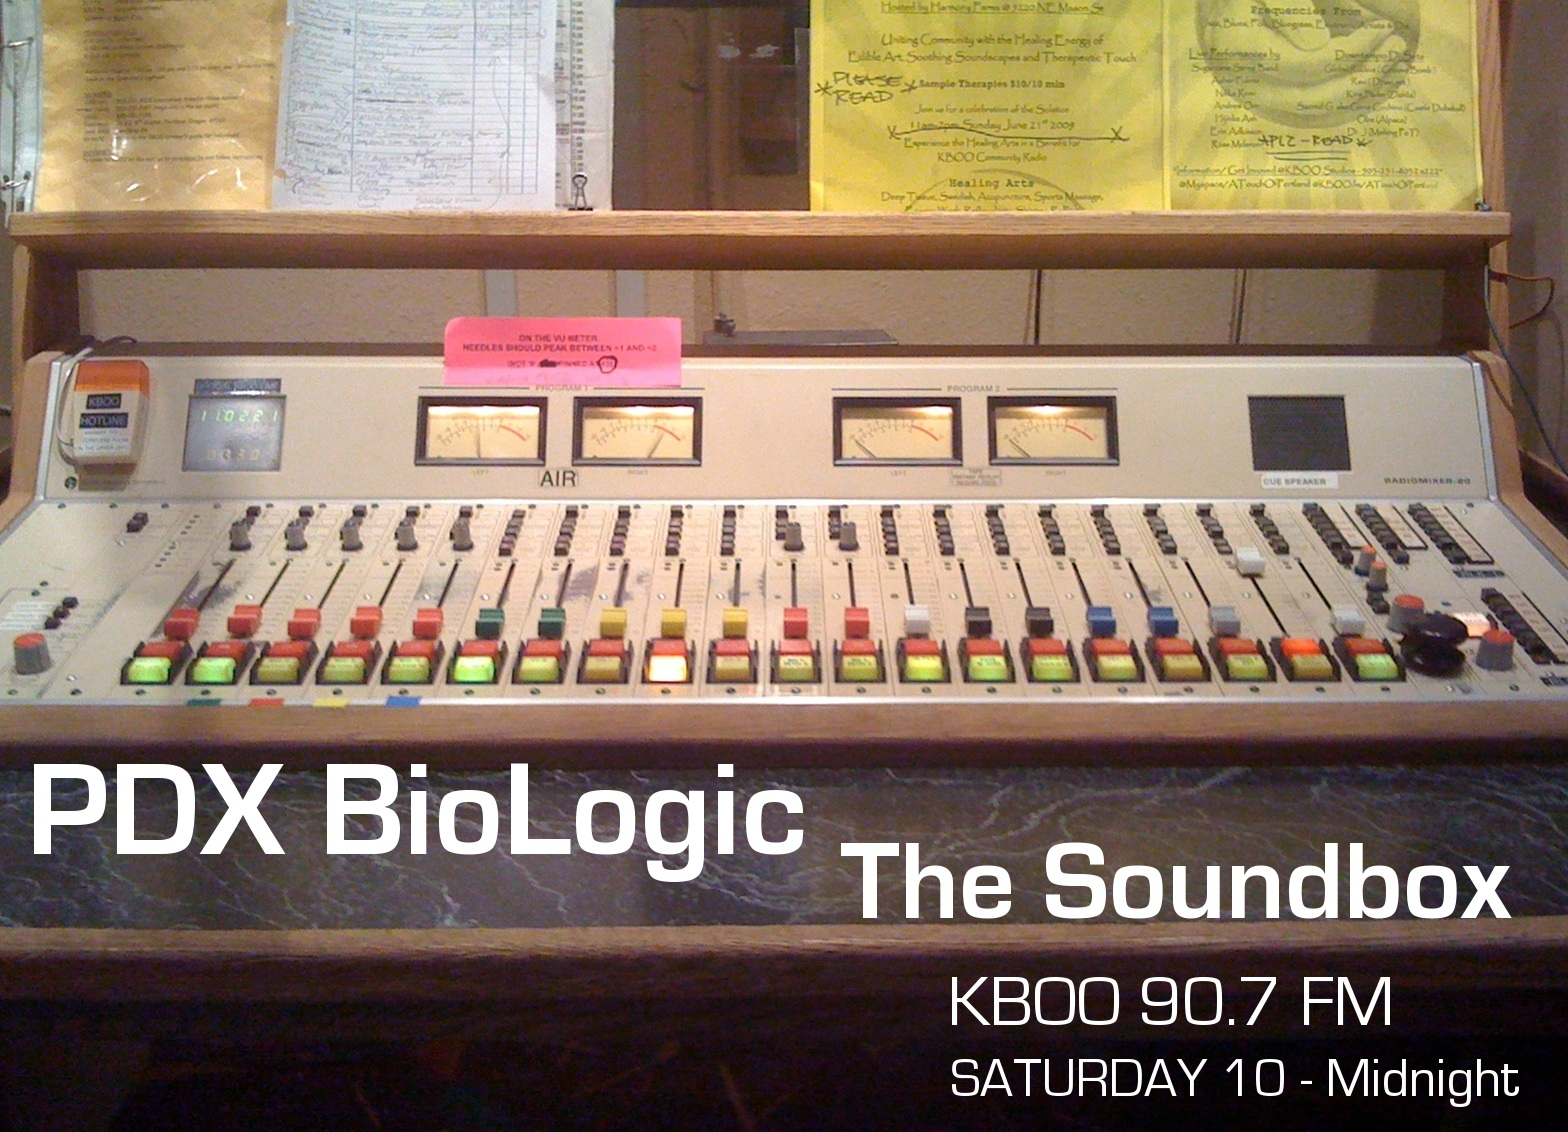 Portland Hip Hop Soul Funk DJ Keane PDX Biologic The Soundbox